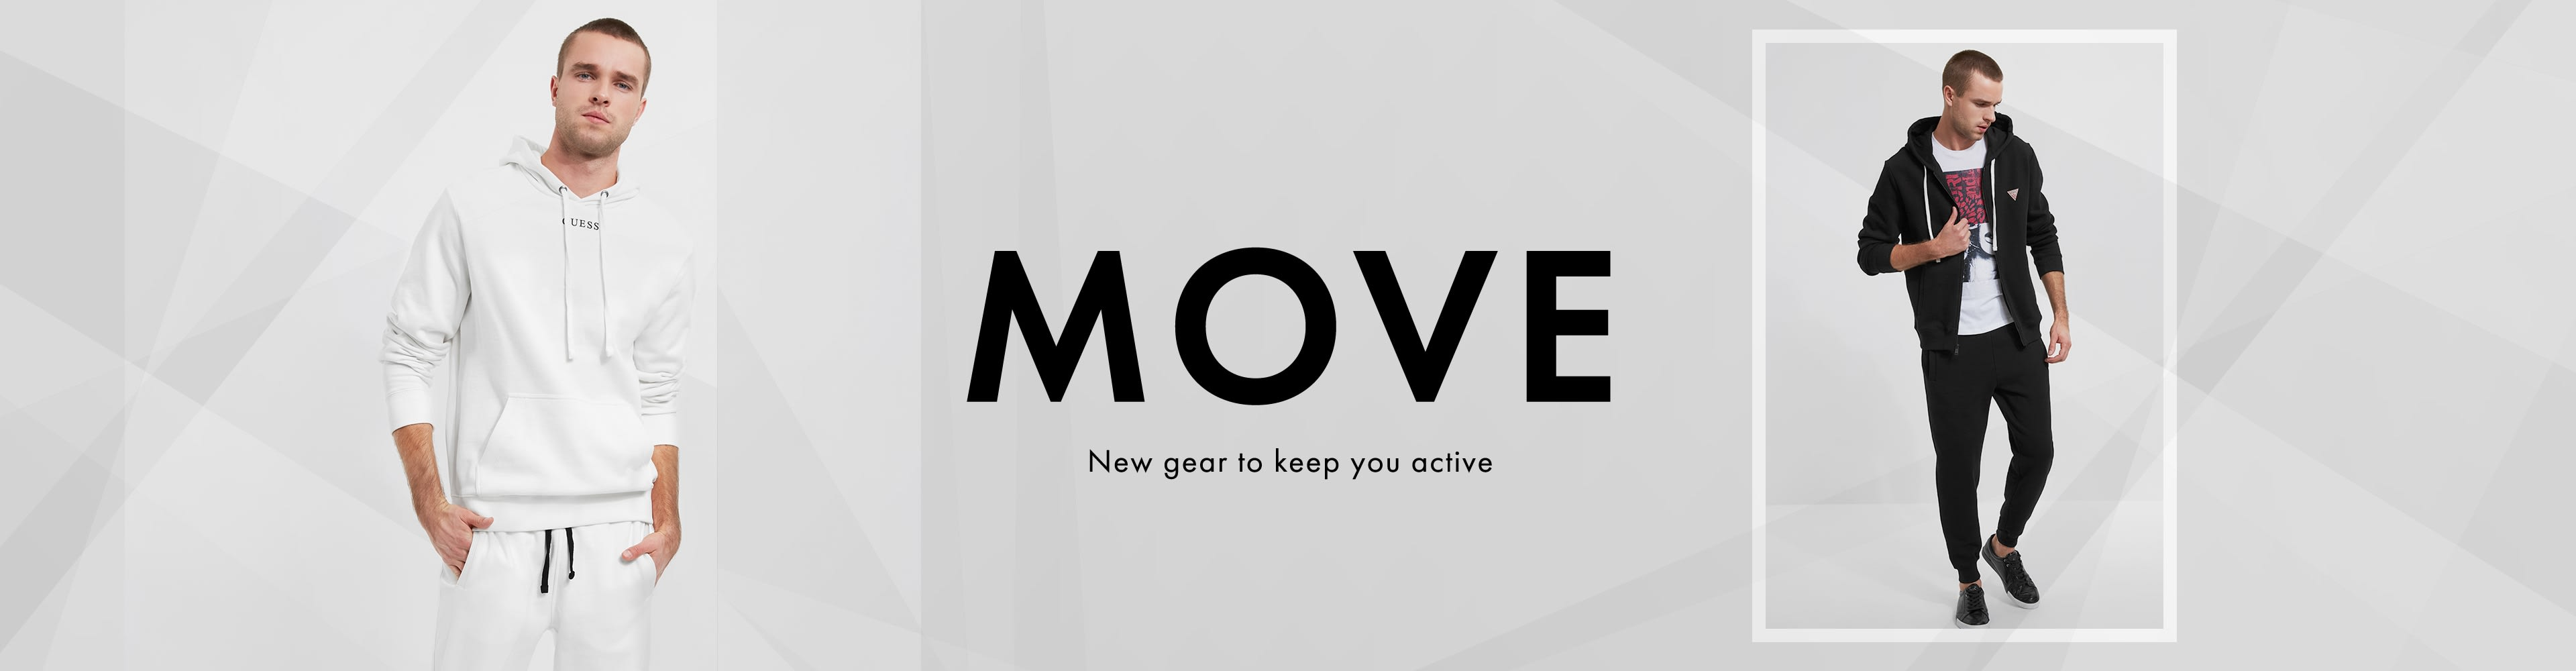 New gear to keep you active